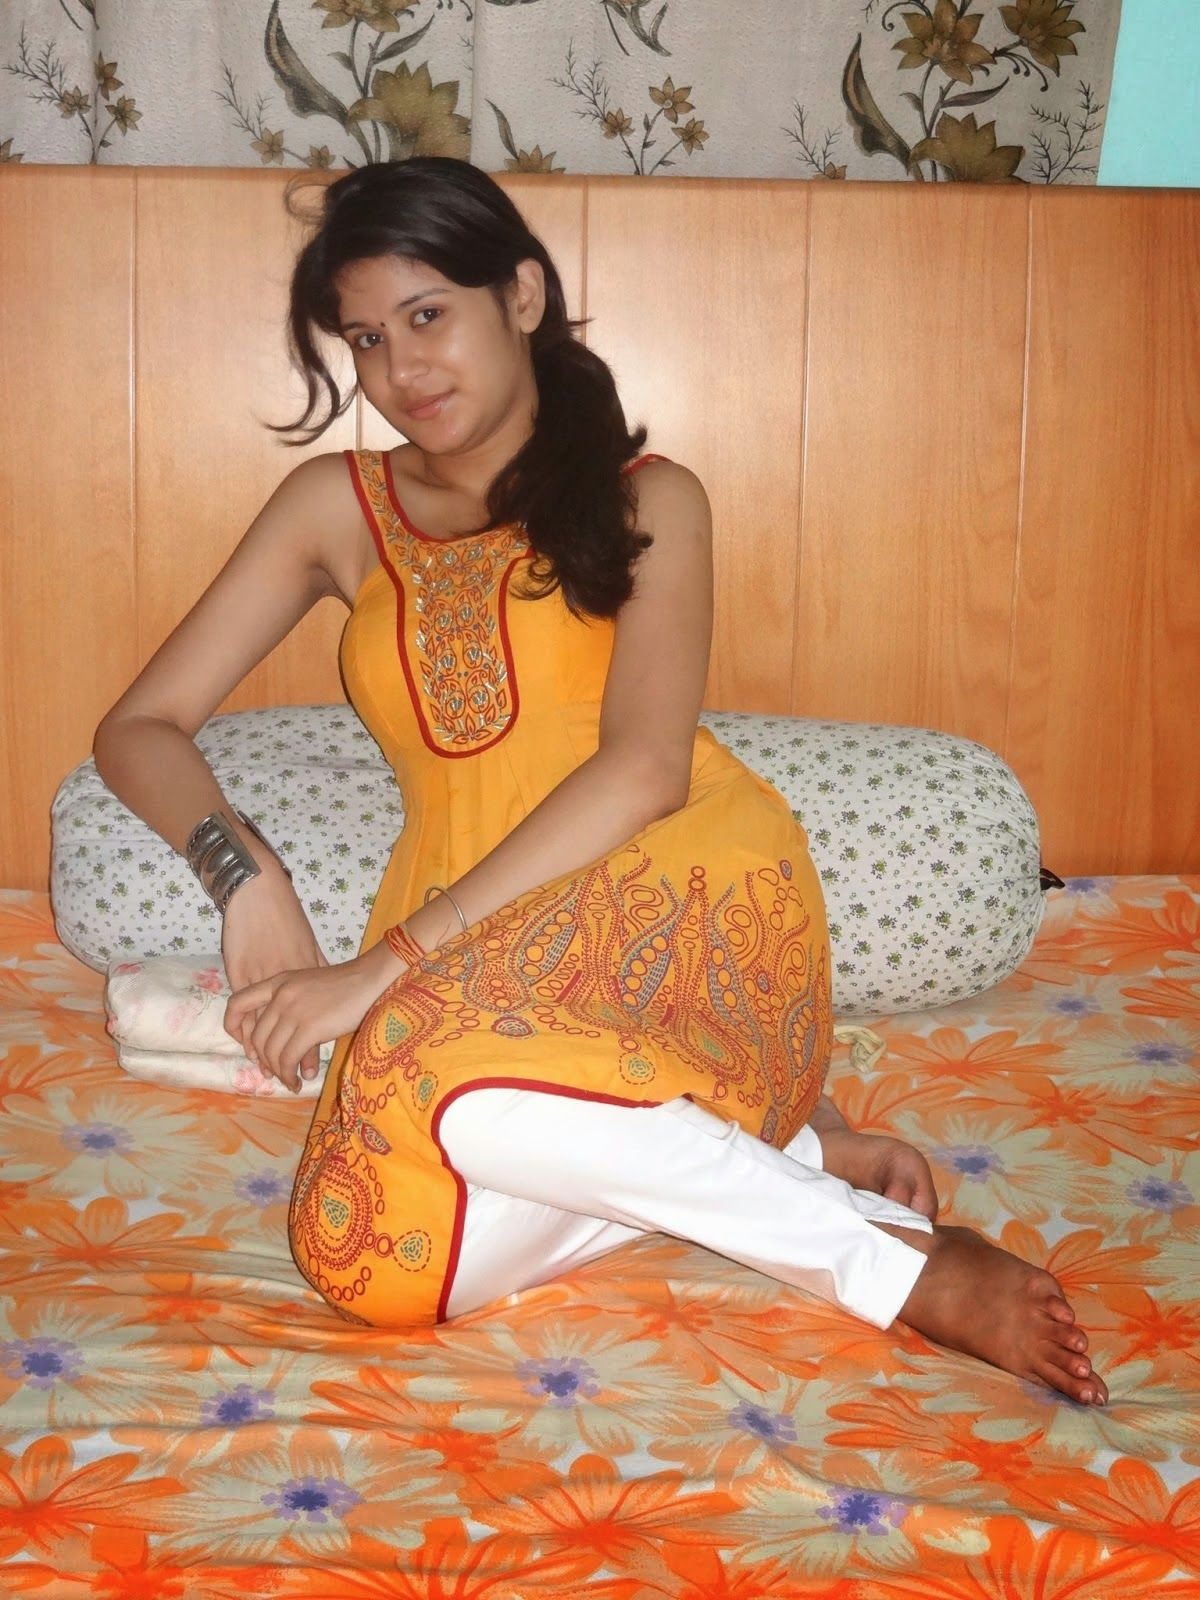 Hot Cleavage Real Life Bhabhis Spicy Aunties Deep Cleavage Boobs Hot Desi Girls Navel Sexy Shapes Curves Please Follow And Repin For More Hot